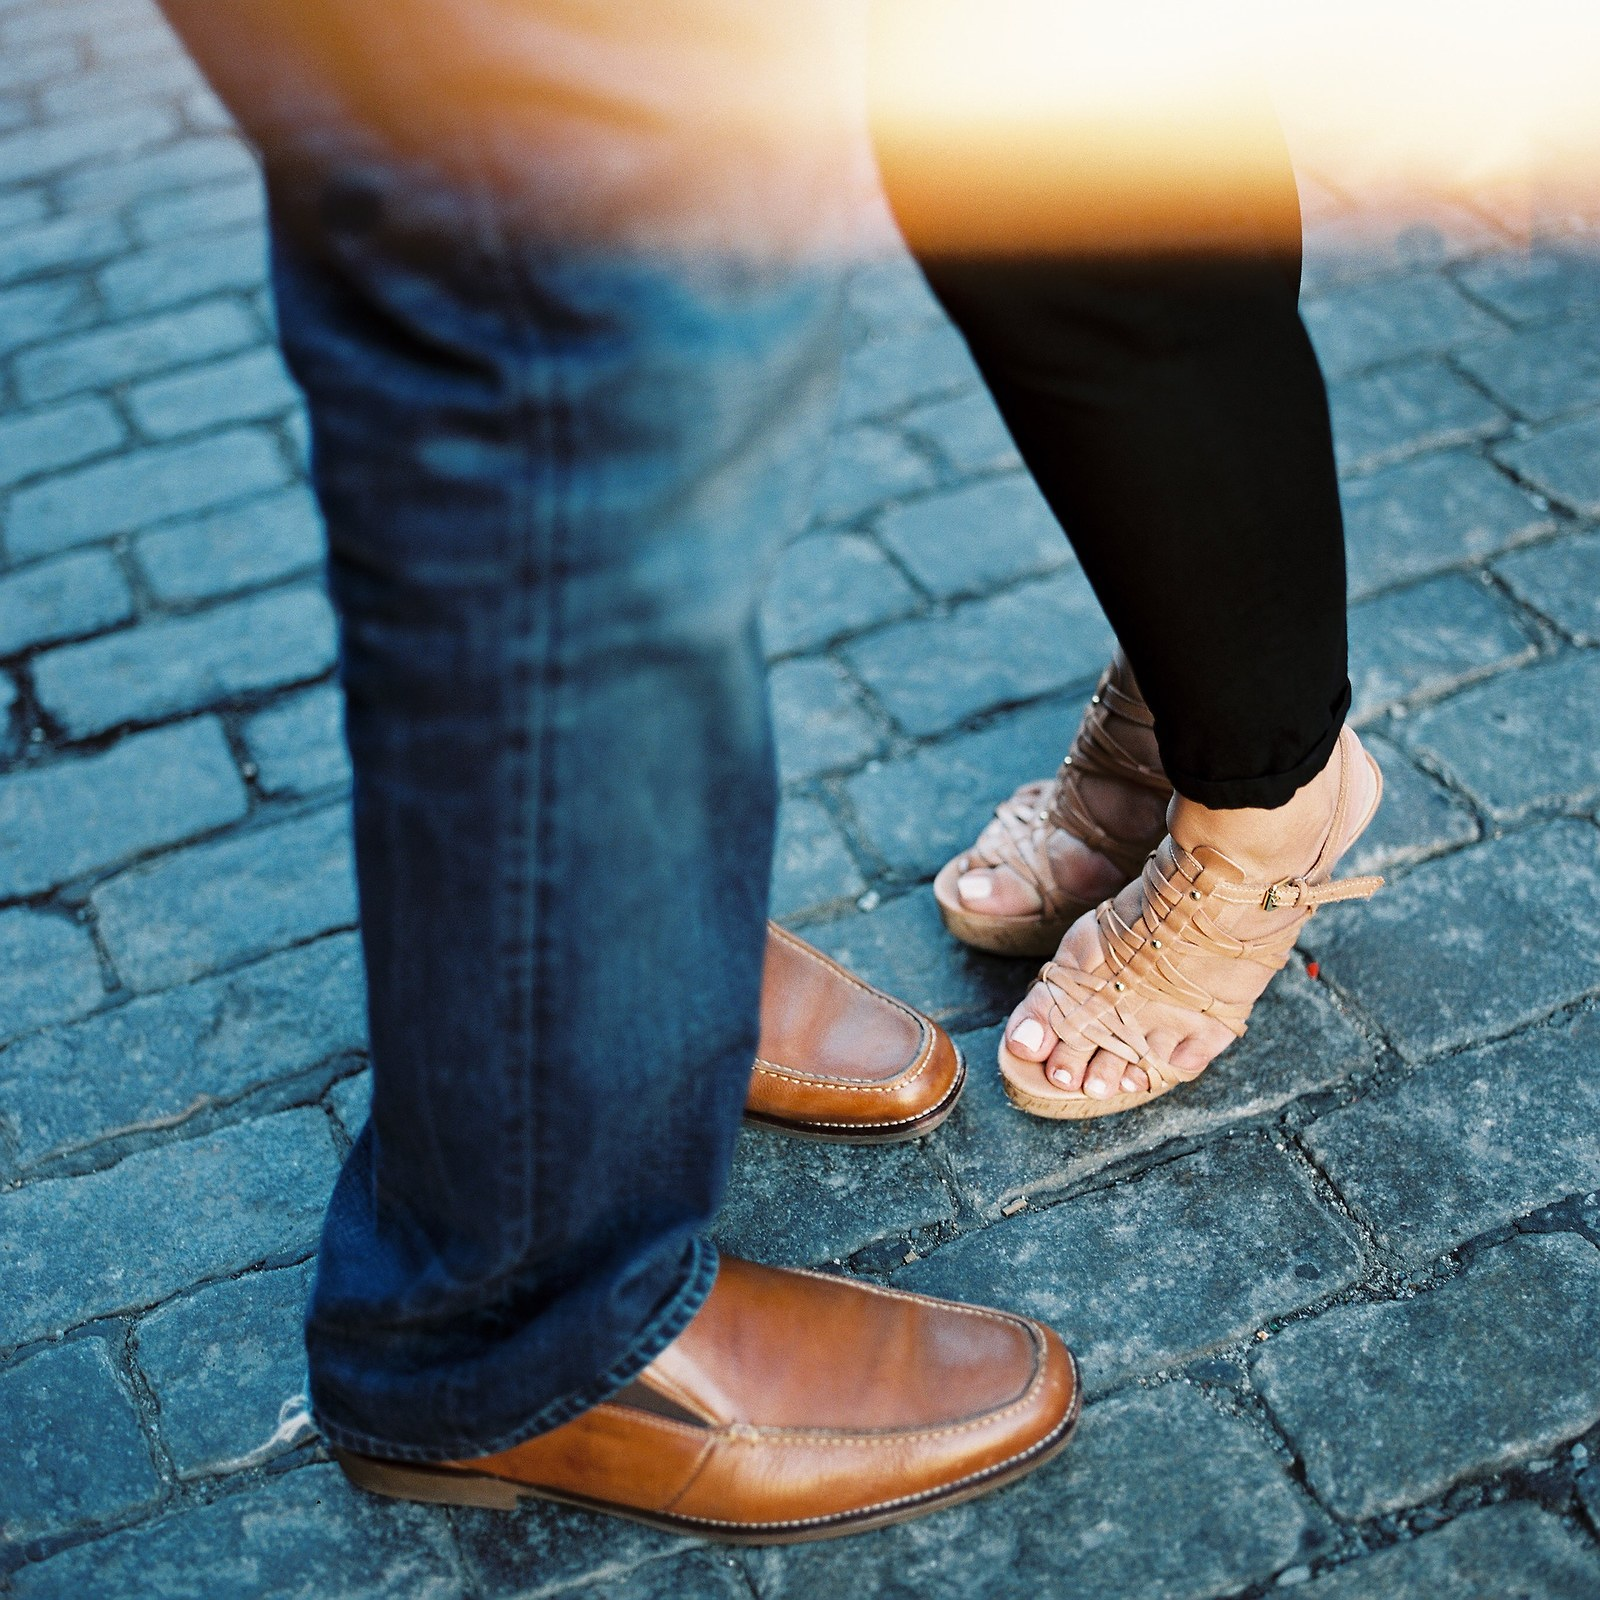 legs and shoes of engaged couple on cobblestone streets in nyc